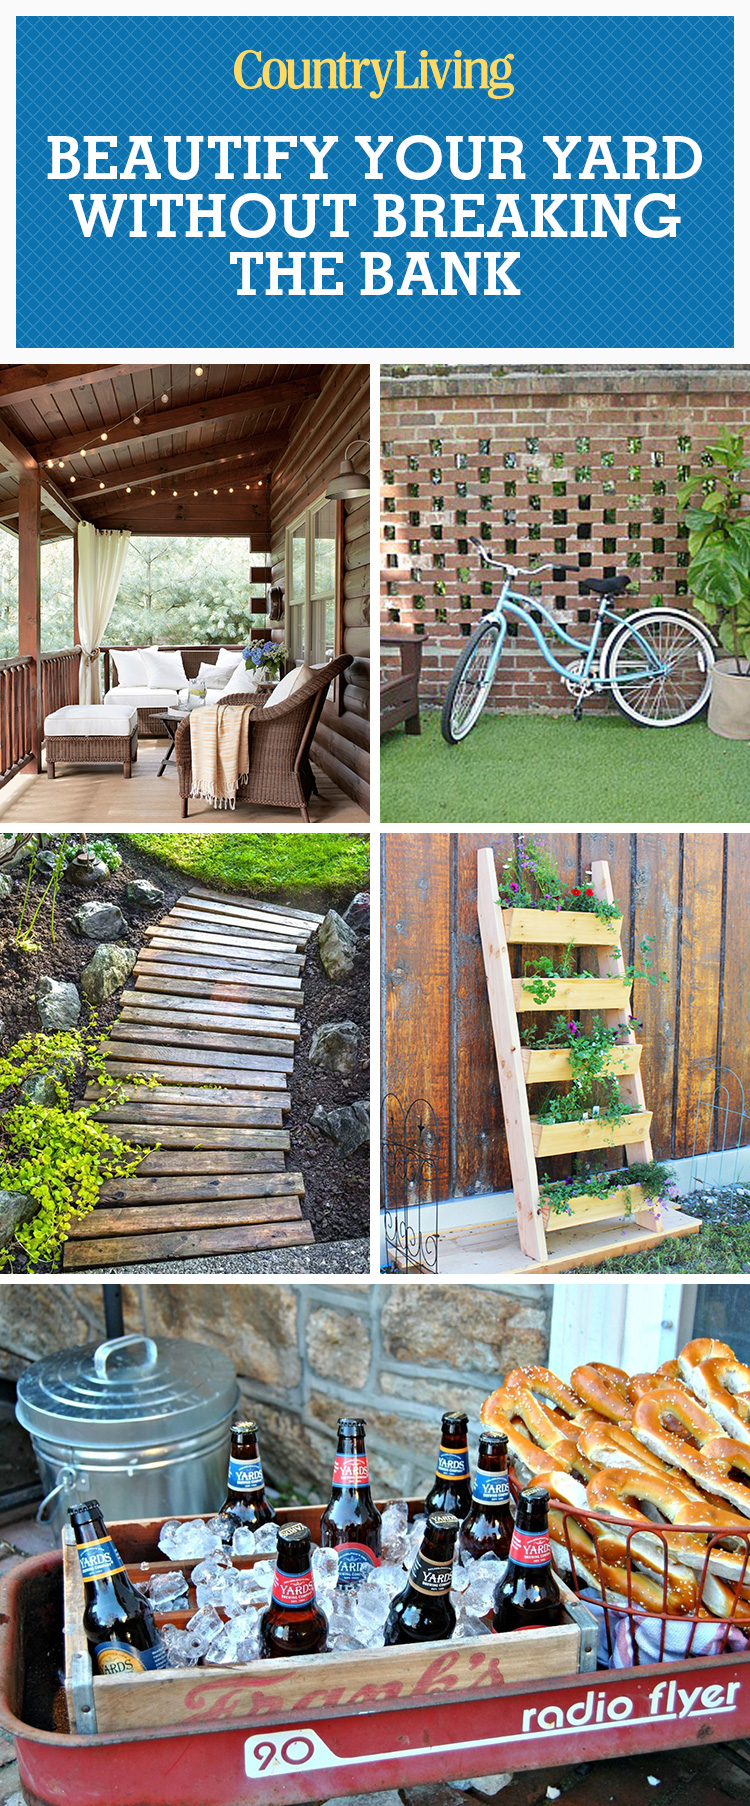 54 diy backyard design ideas diy backyard decor tips for Home yard ideas